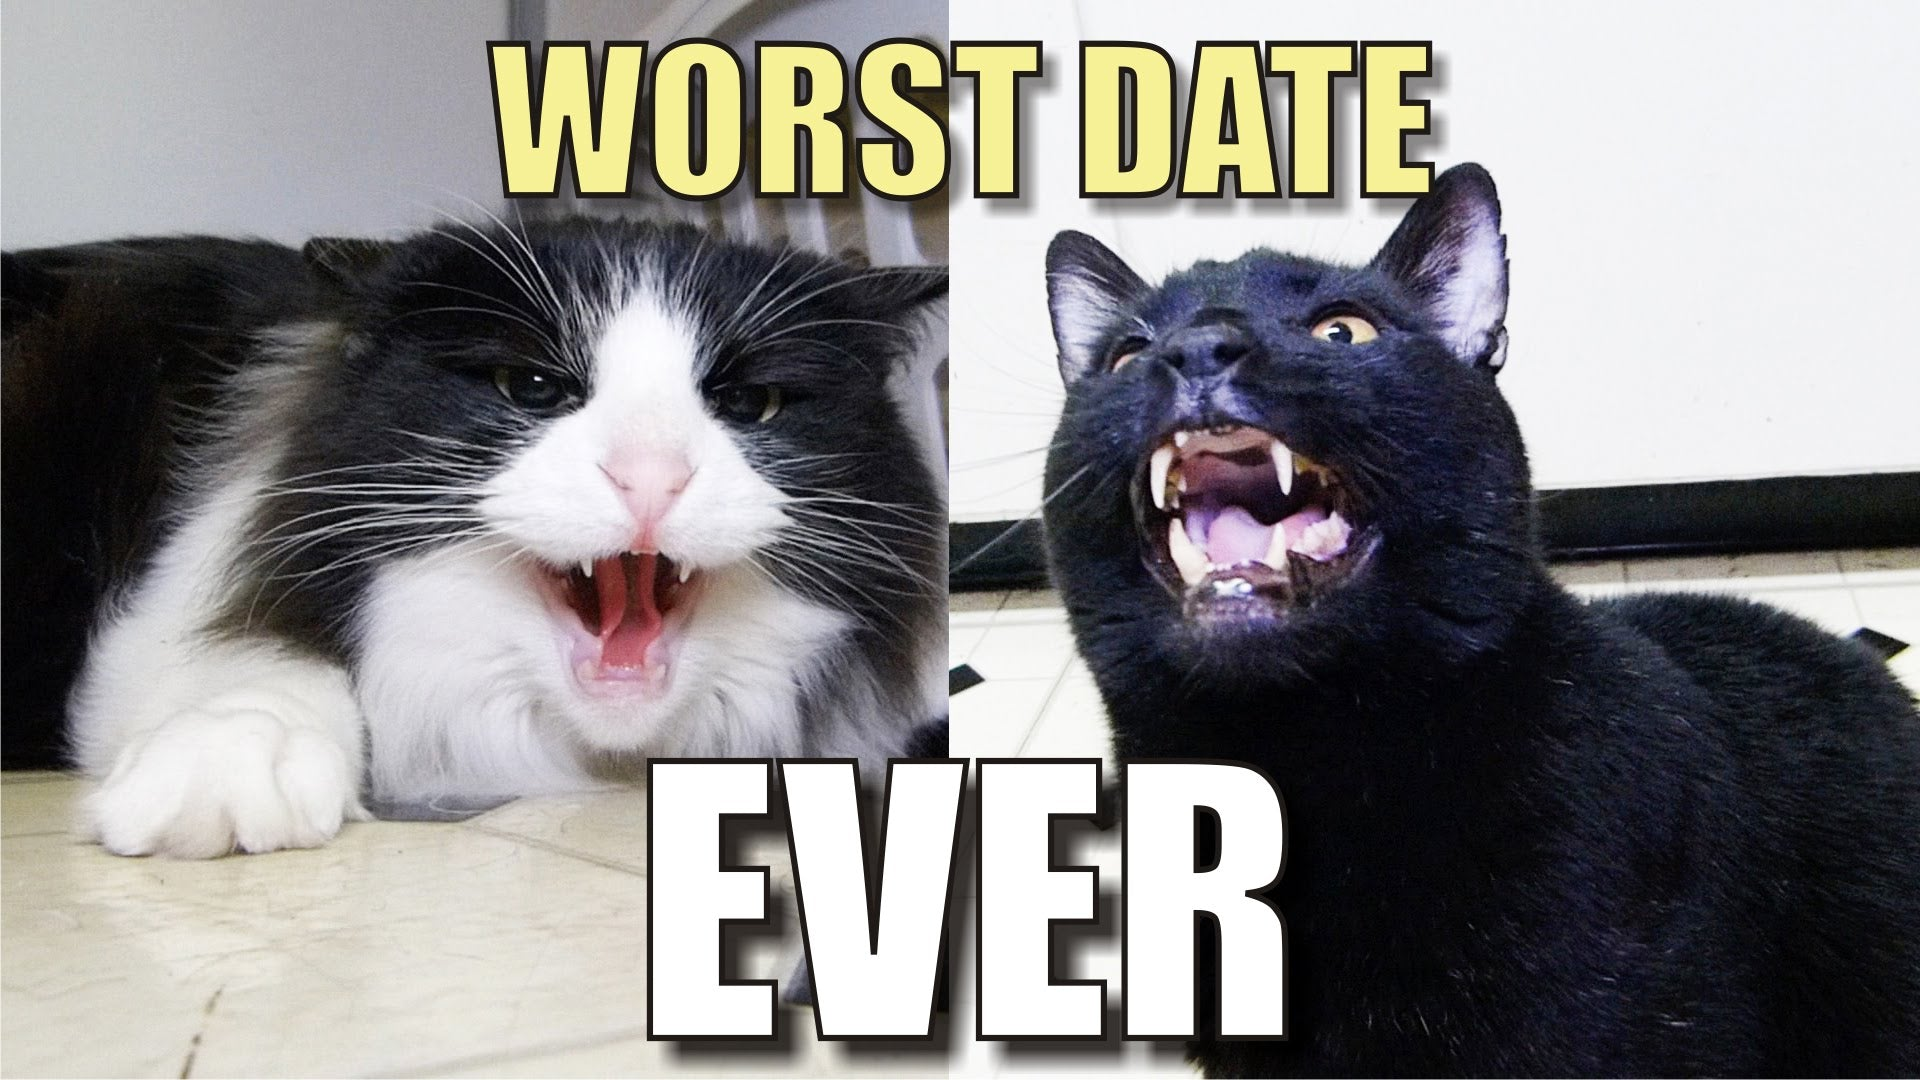 bad cat date, bad date, cats from hell, temper cat, cat temper, dating, cats